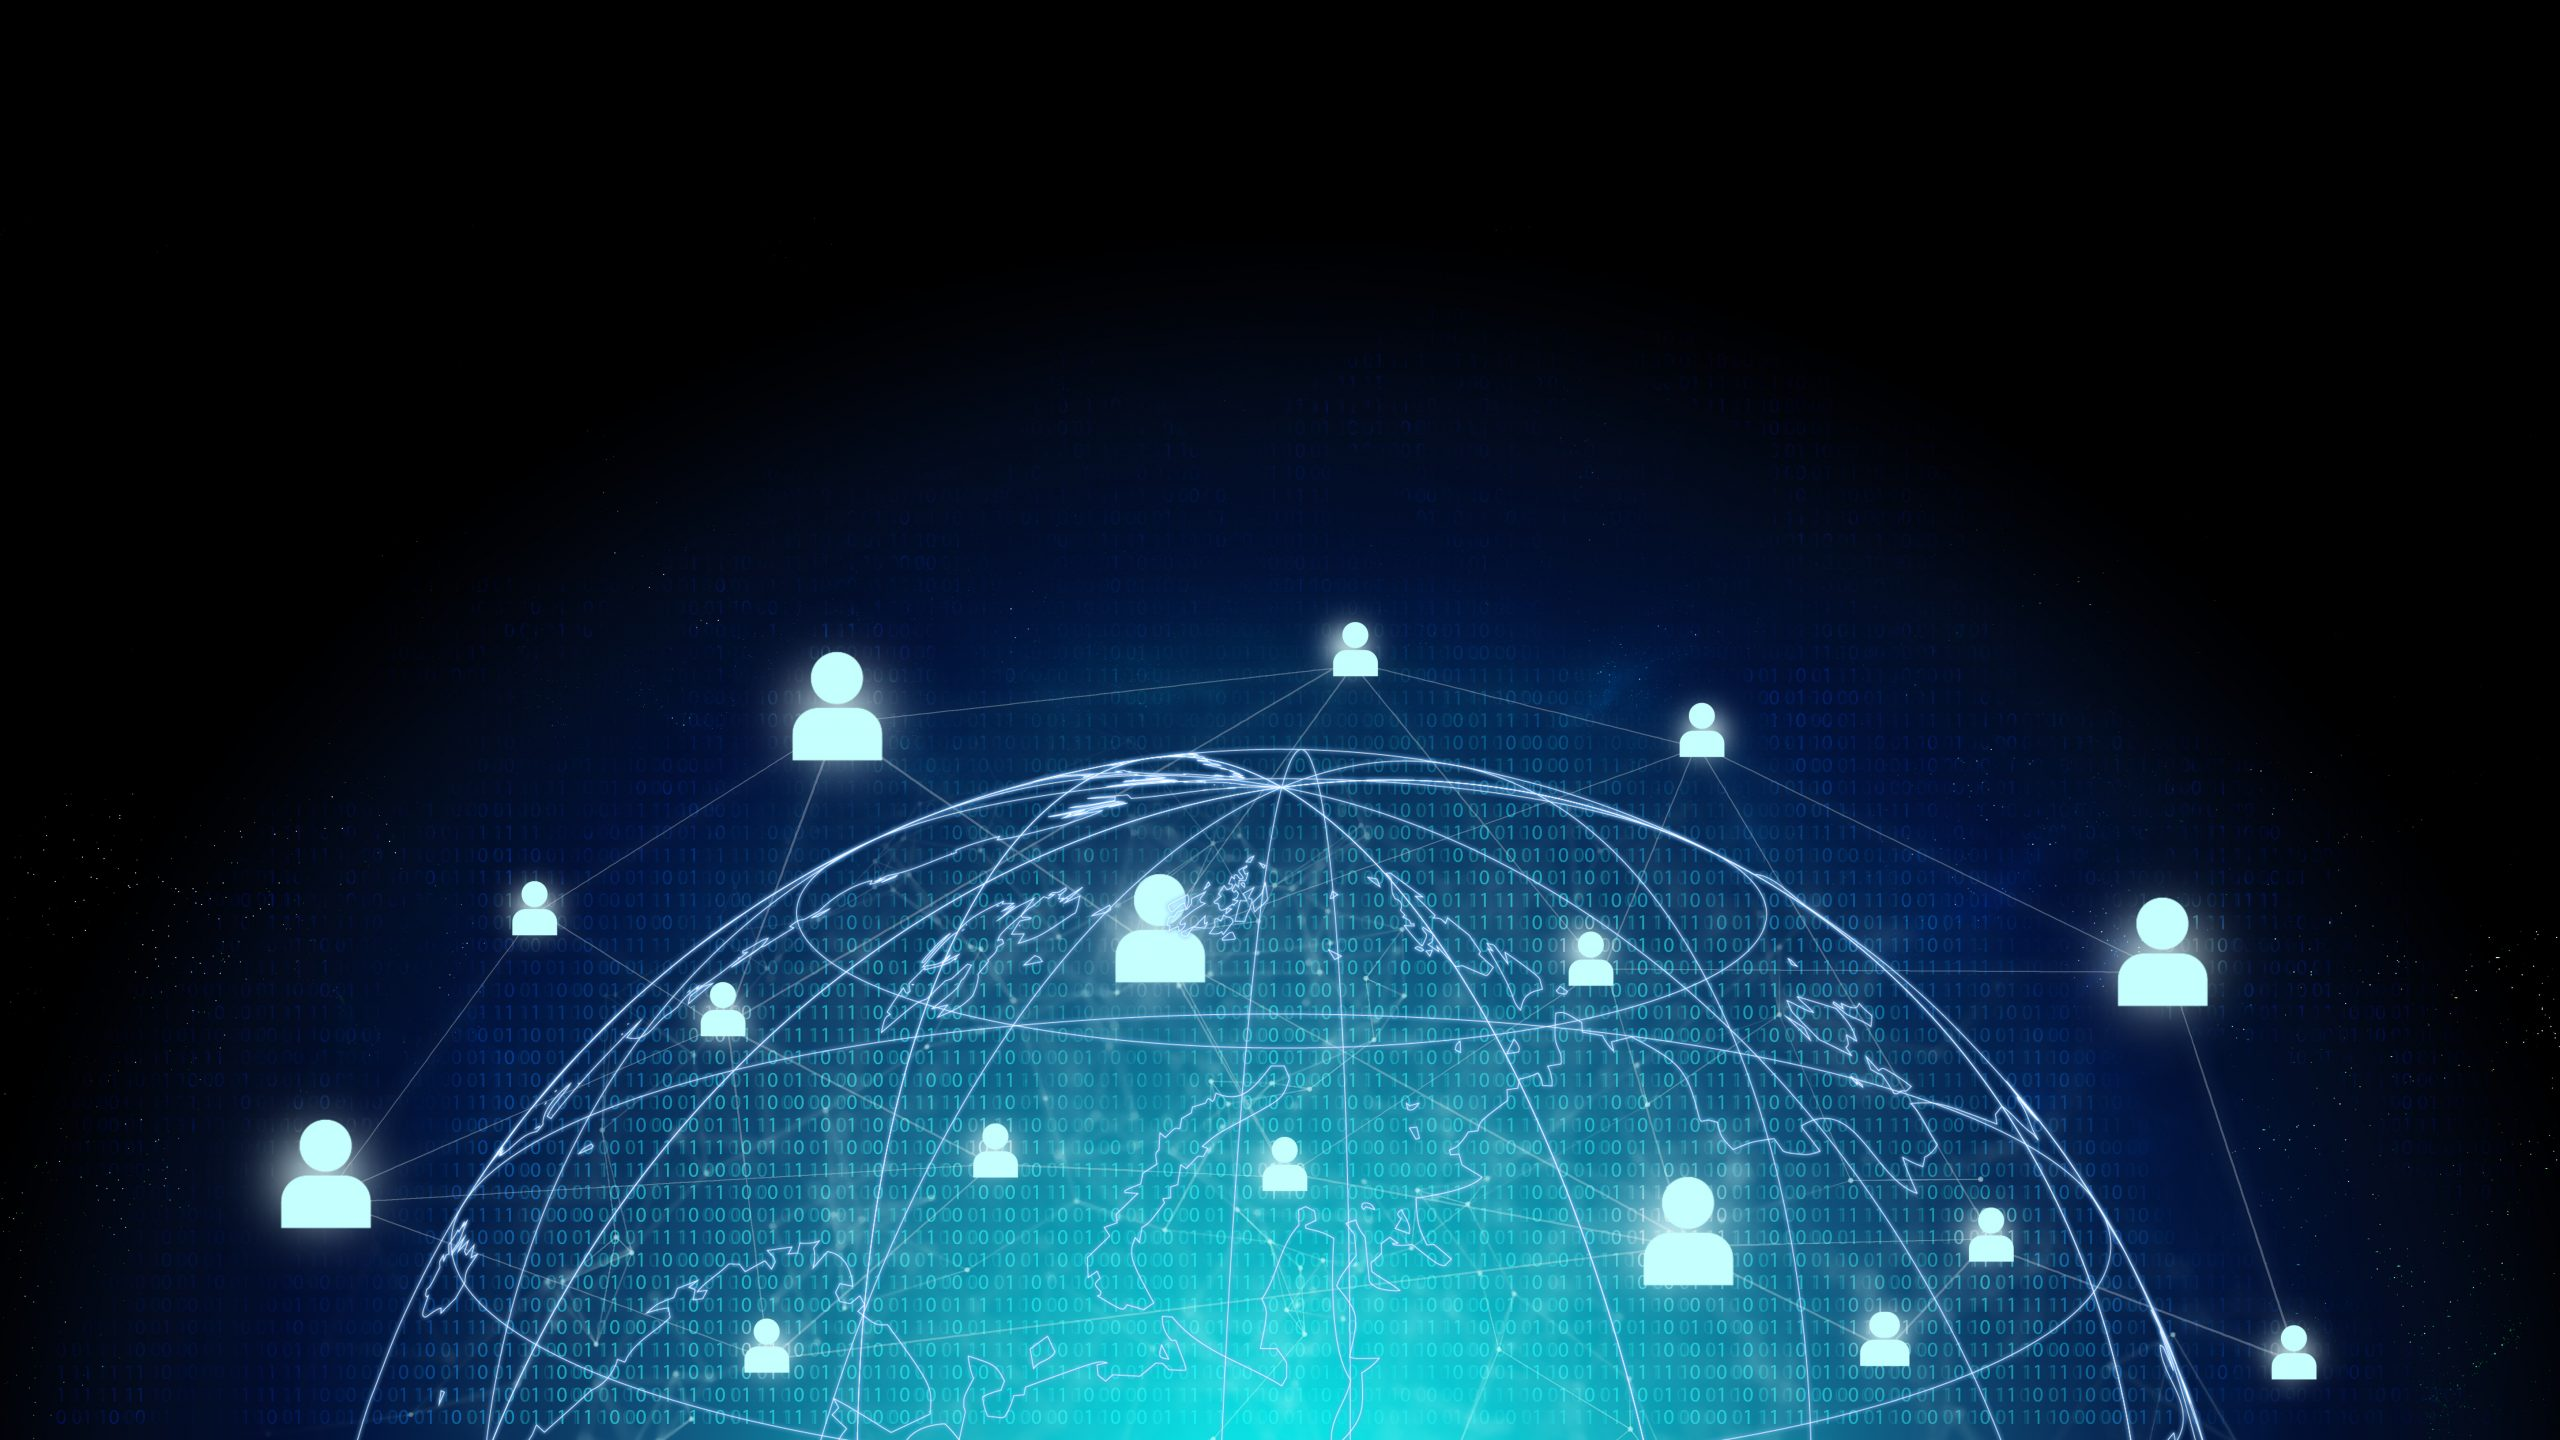 3 solutions for effective online networking